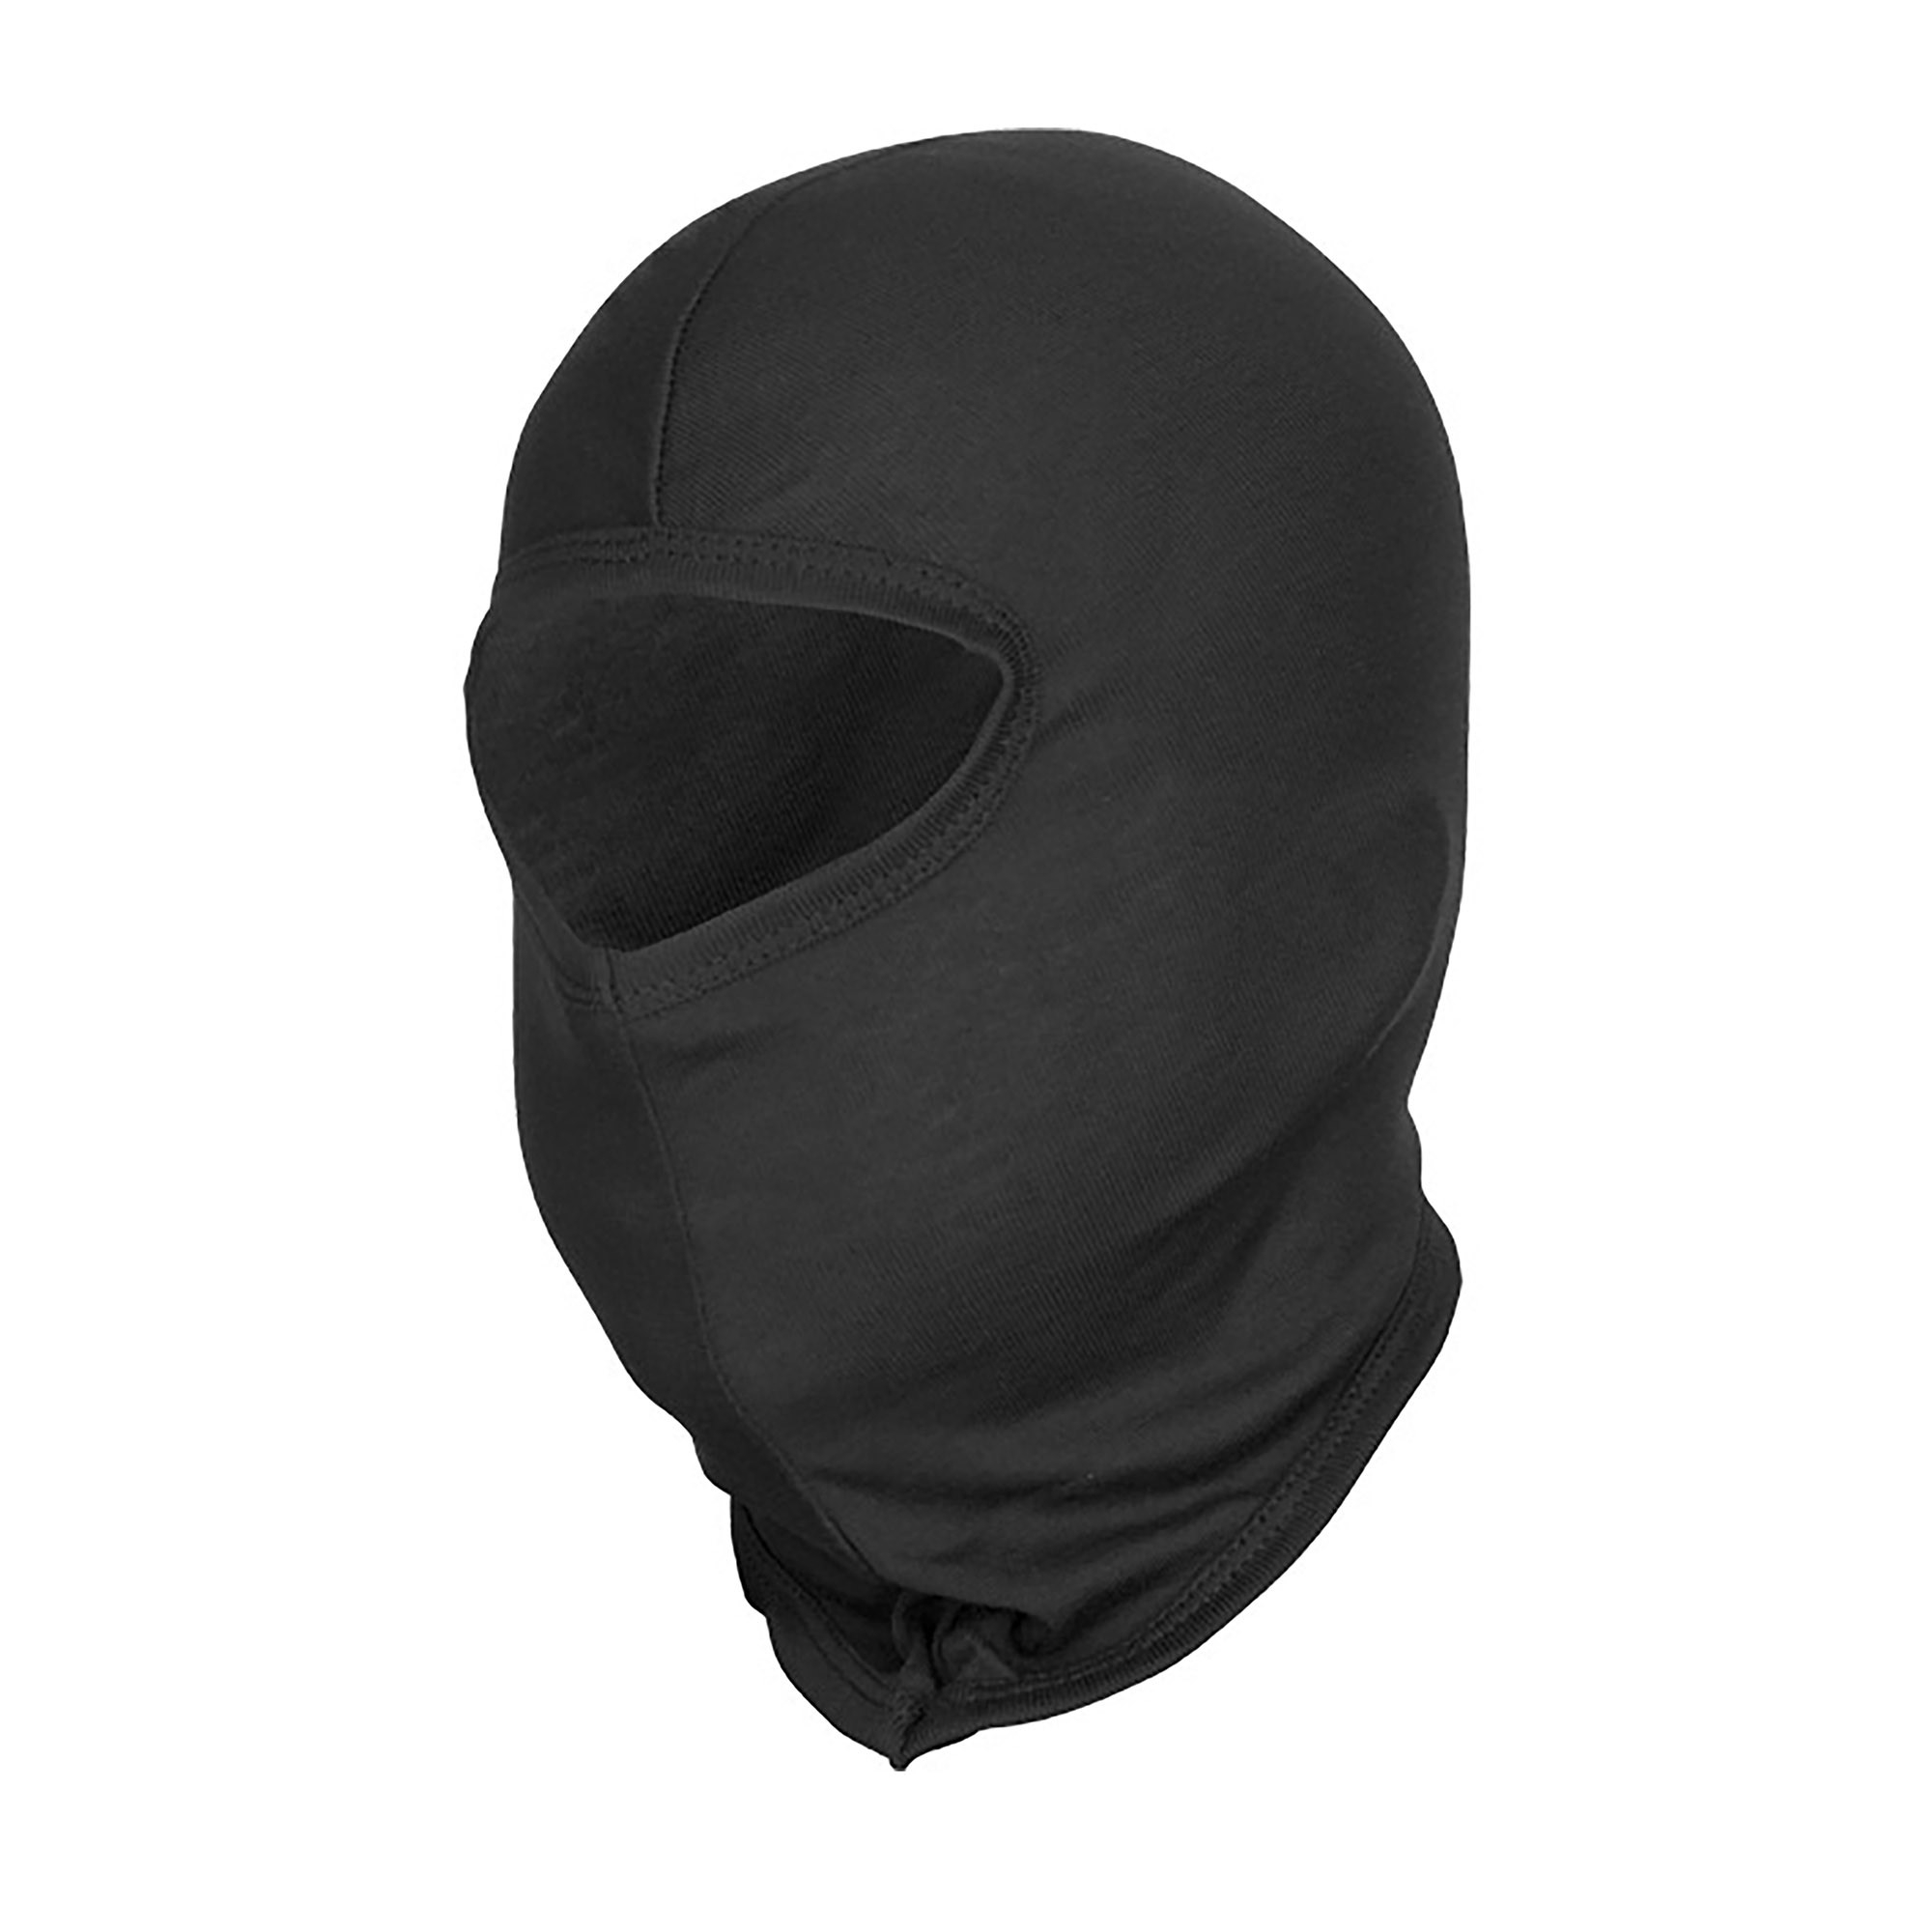 Thermal & Hygienic Helmet Balaclava - Keeps Heads Warm & Smells At Bay!